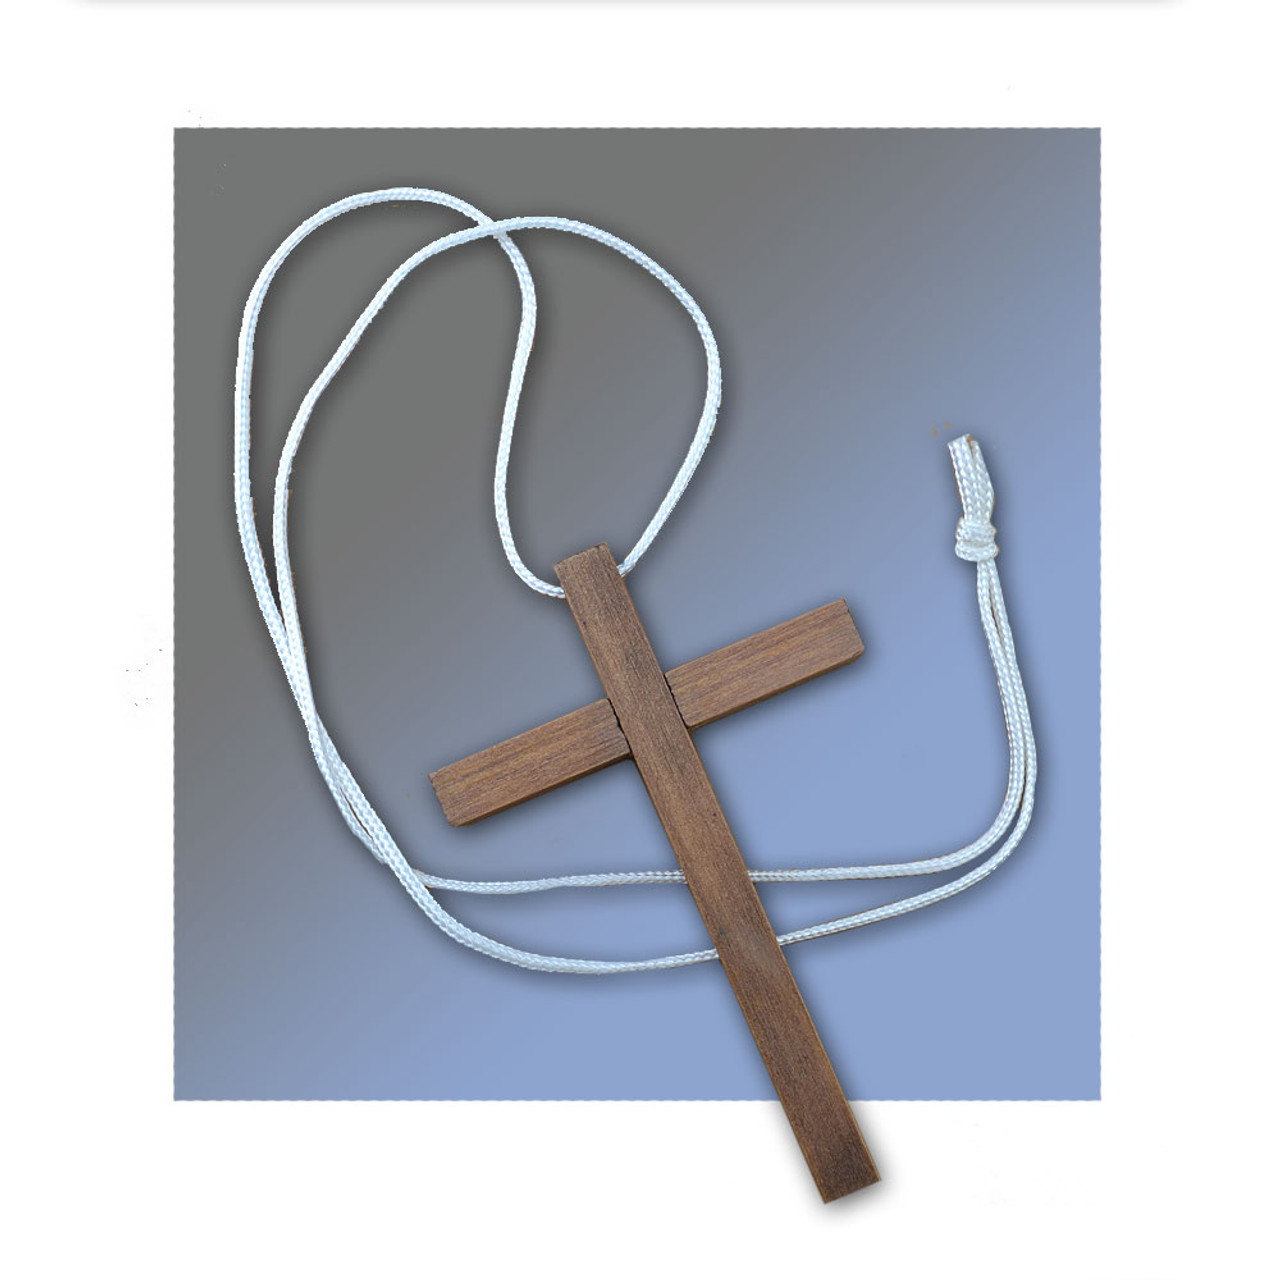 3x 4-5/8IN Liturgical Wood Cross Necklace w/Cord